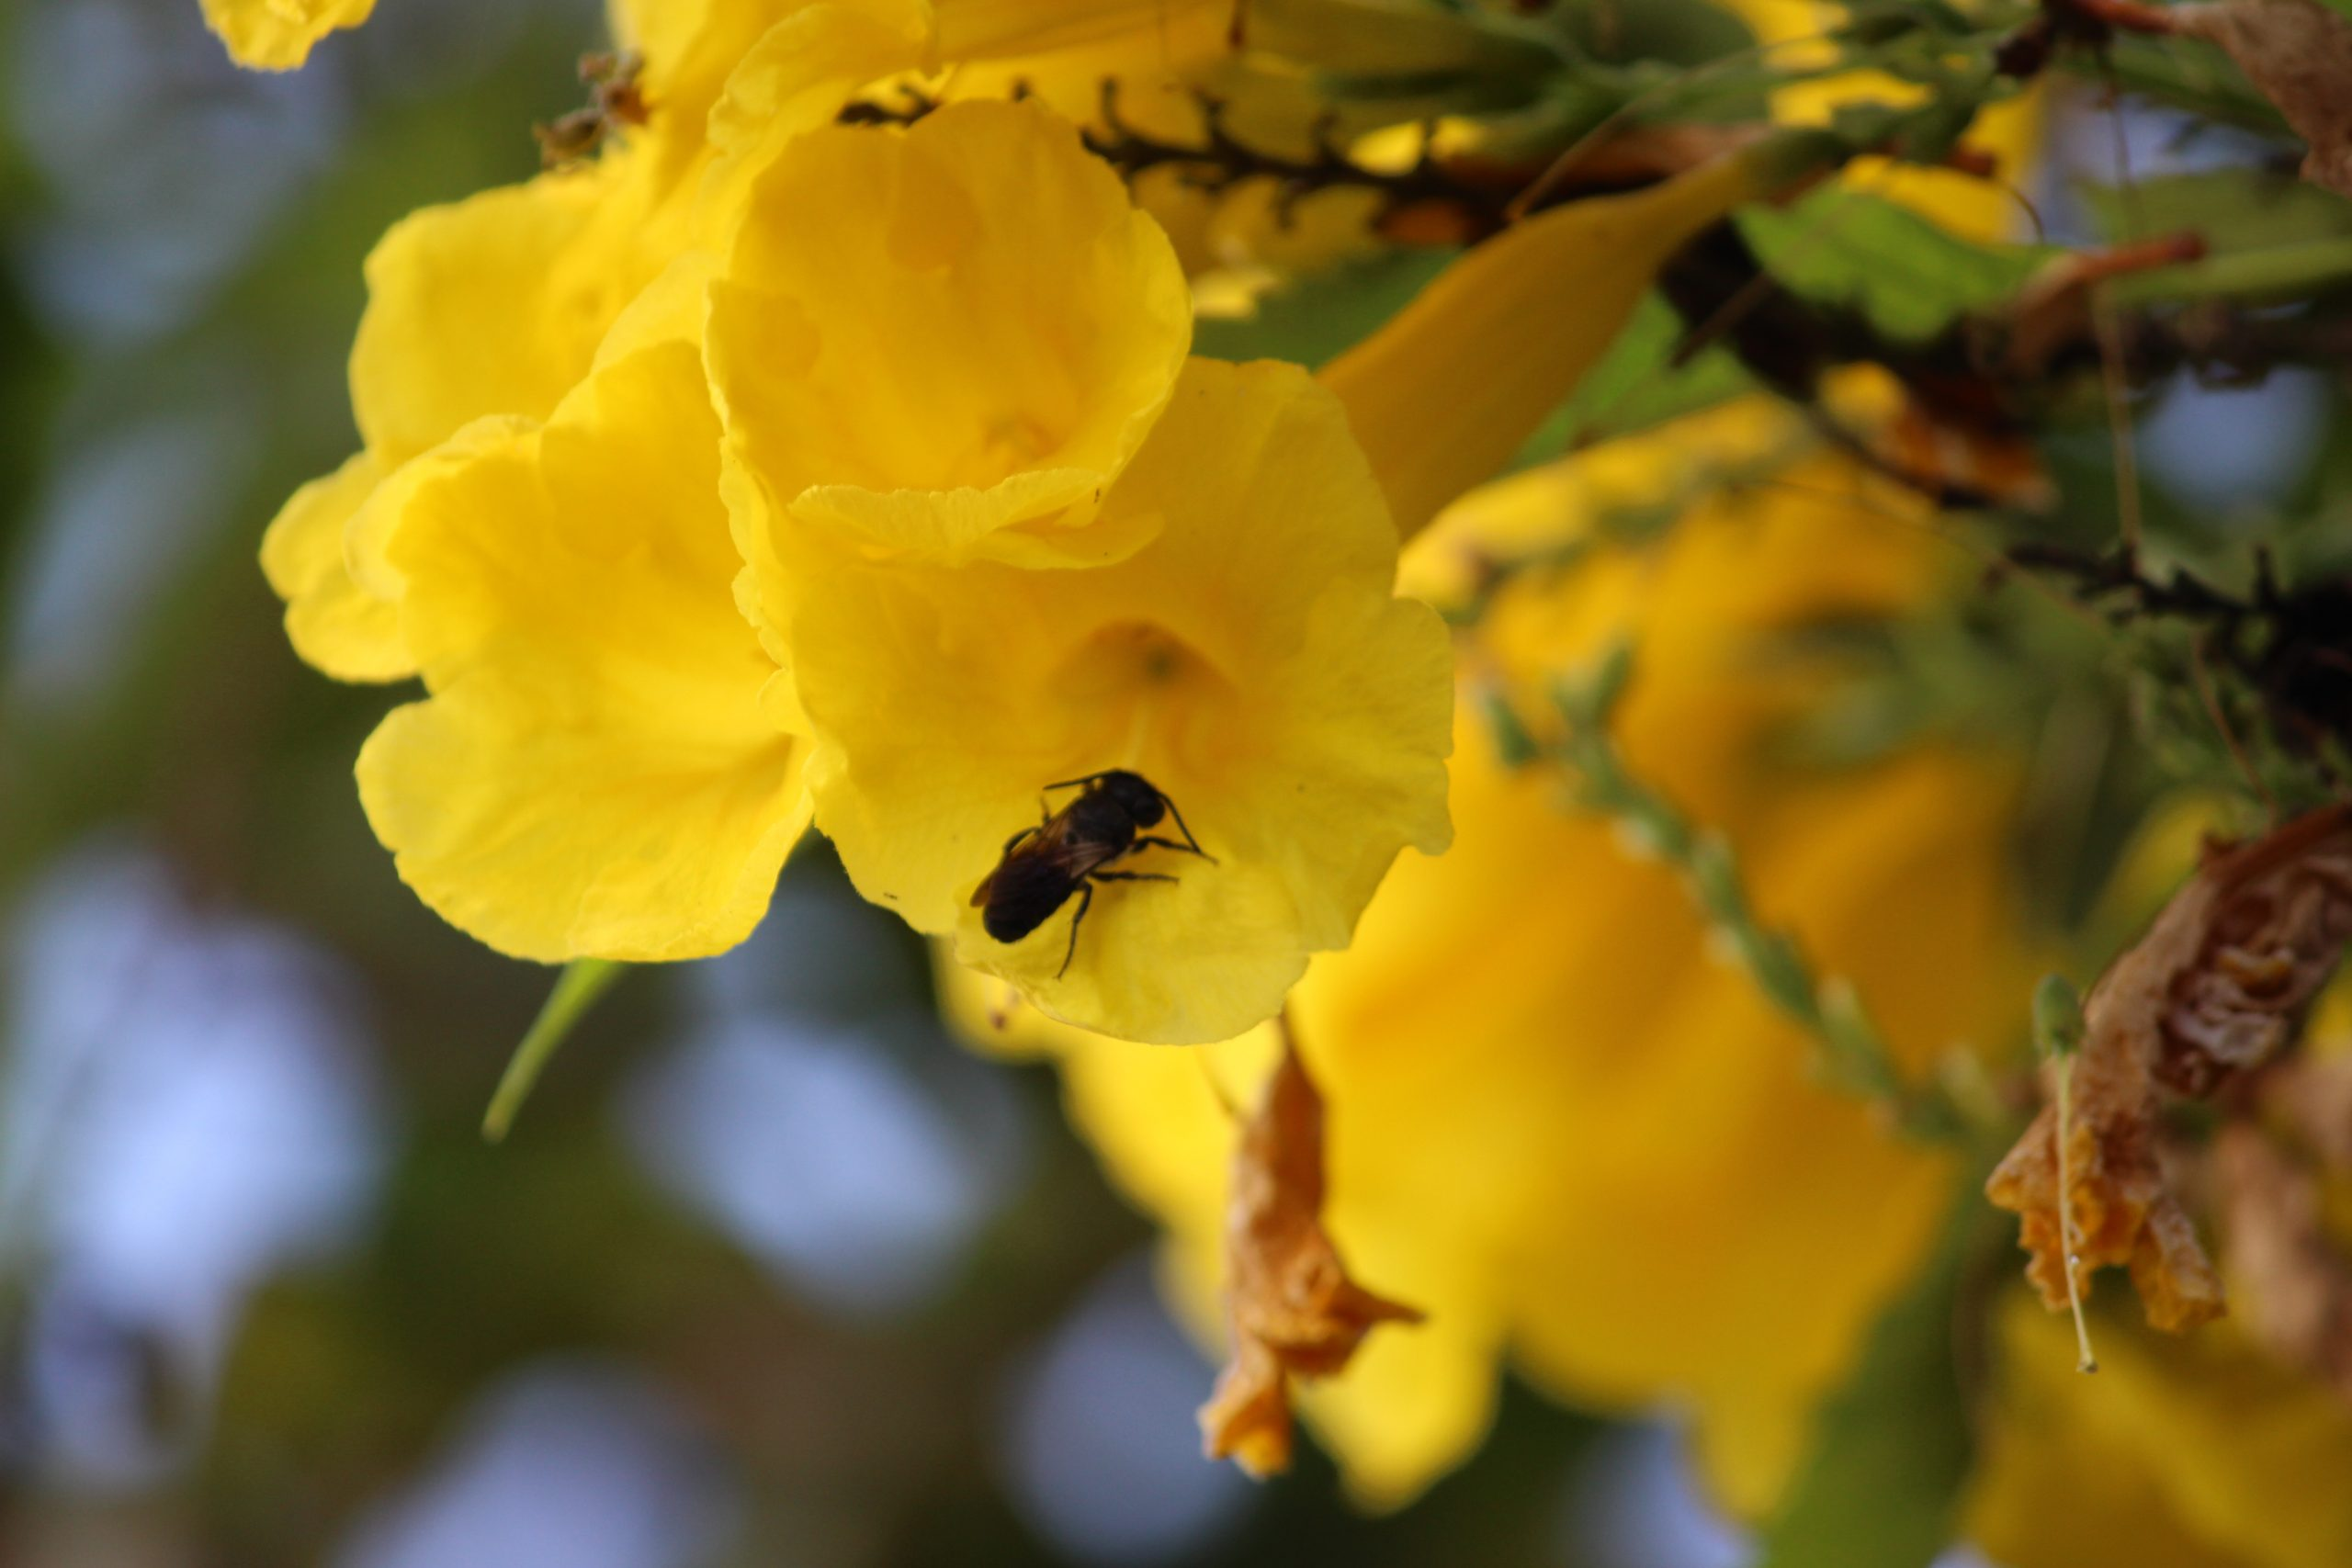 Honey Bee on Yellow Flower blossoms